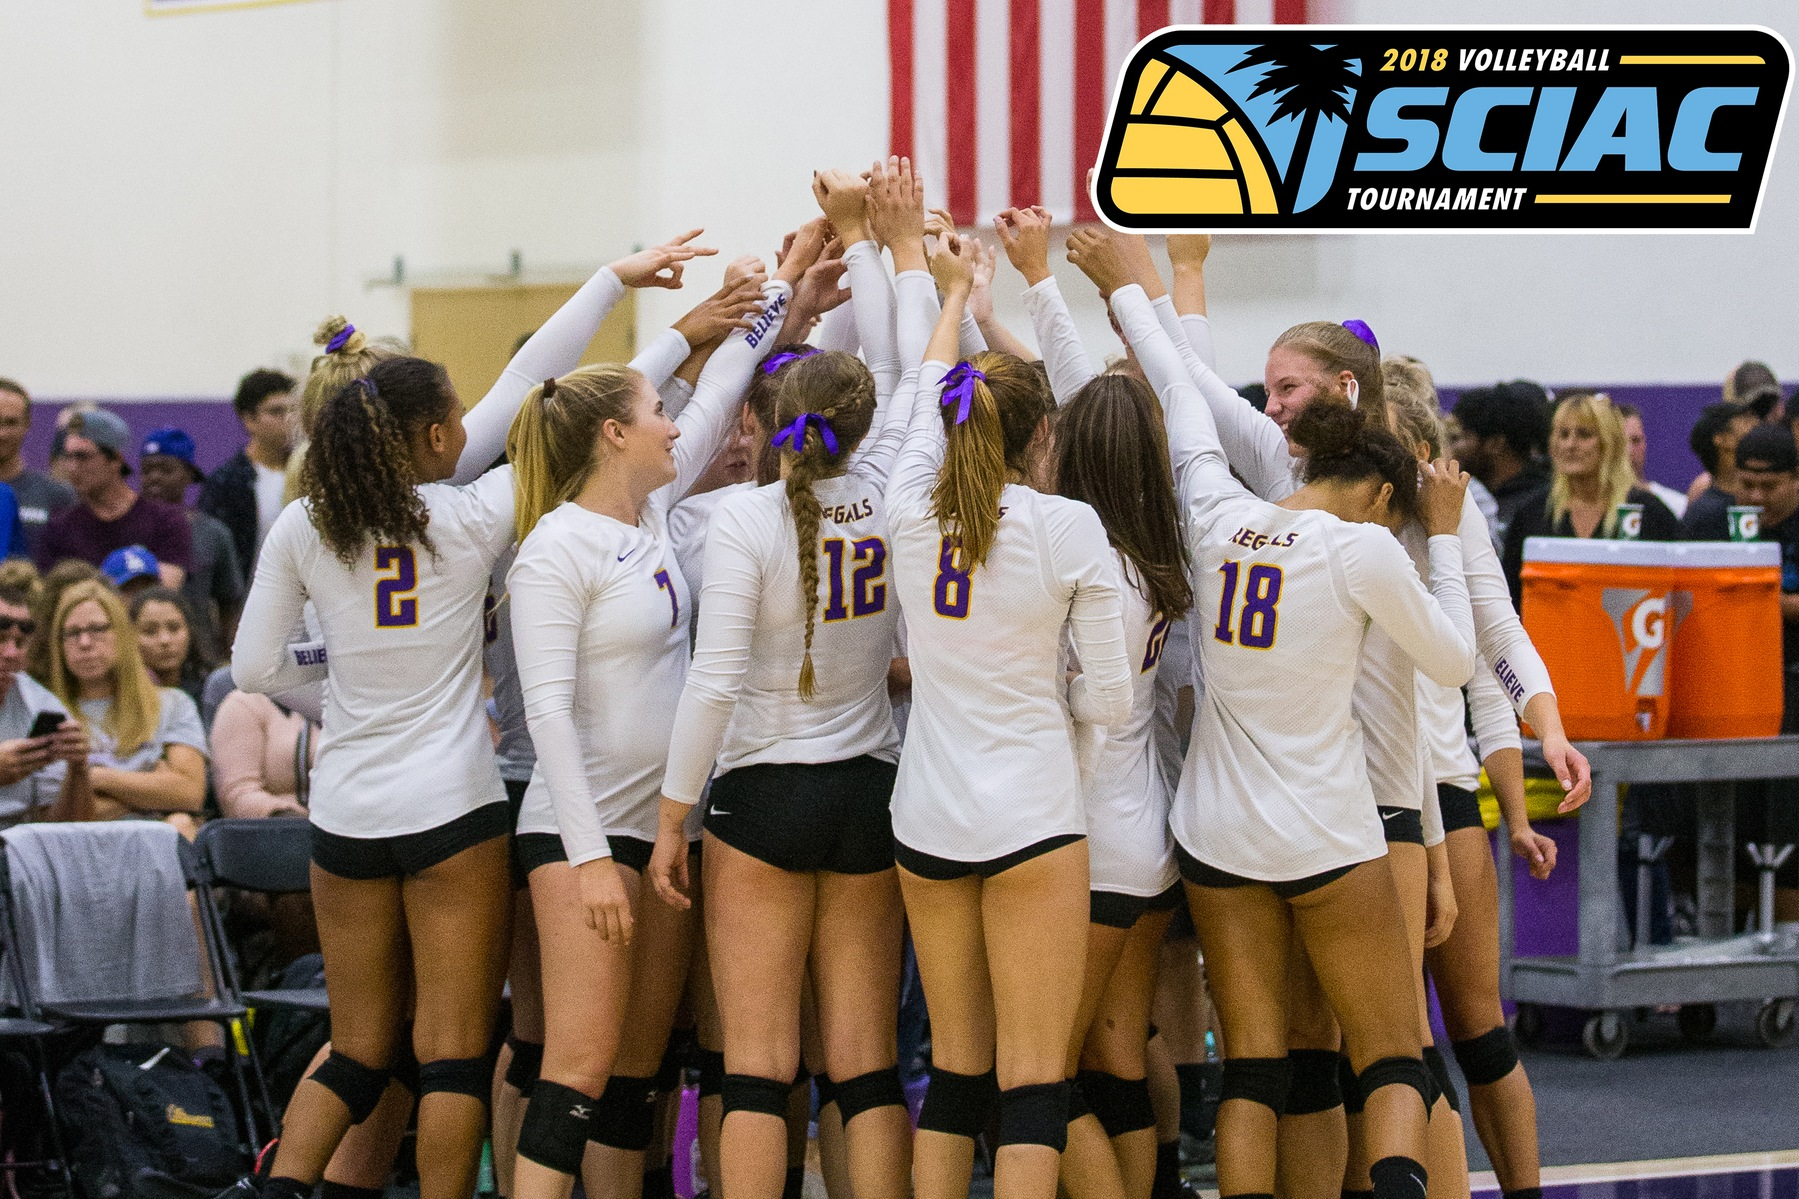 Regals Host Panthers in SCIAC Tournament Semifinals